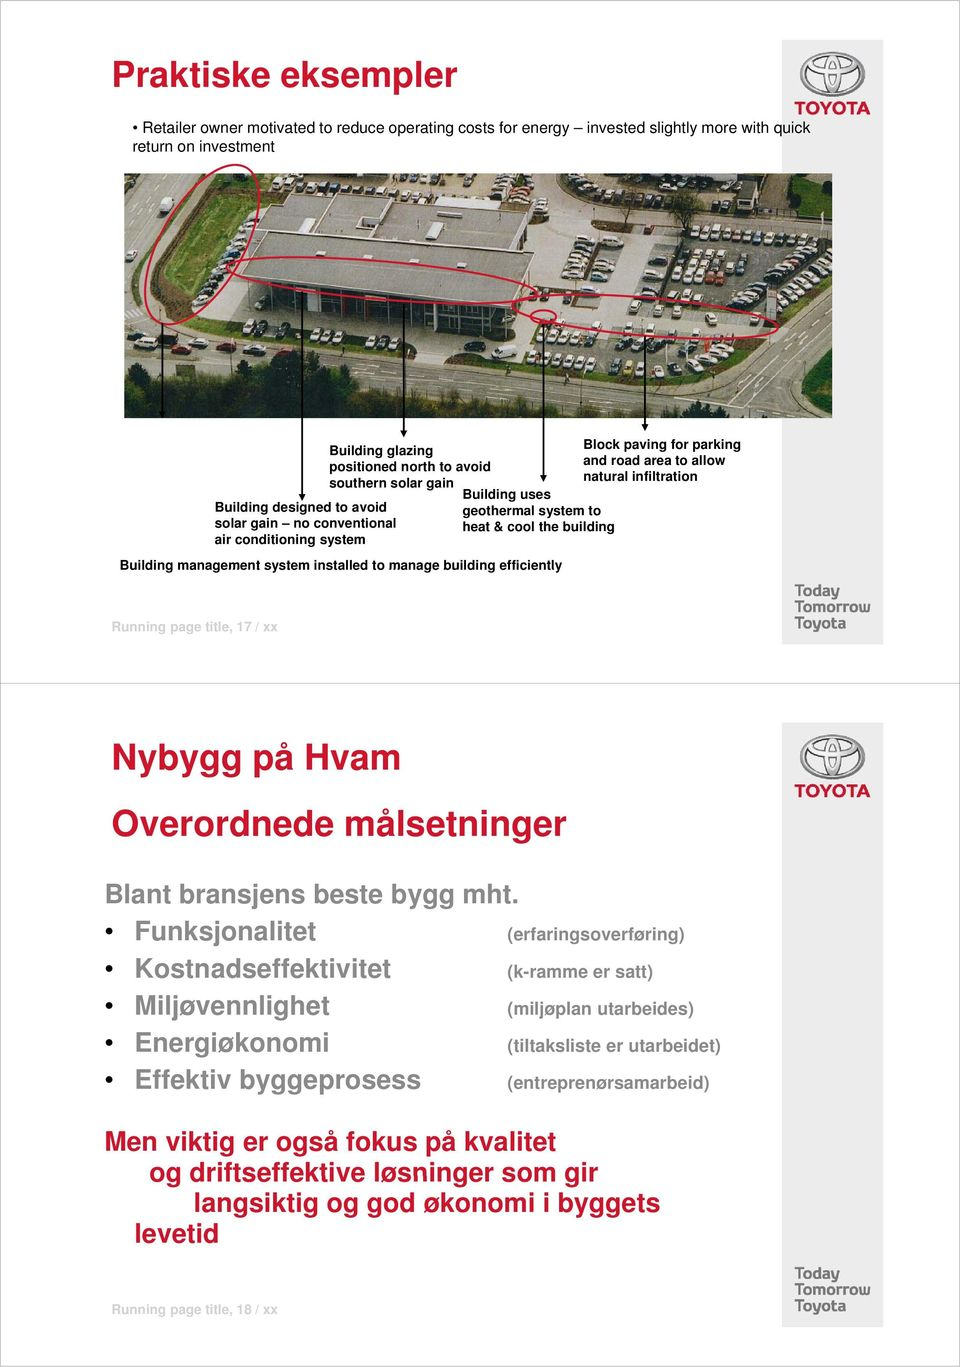 efficiently Block paving for parking and road area to allow natural infiltration Running page title, 17 / xx Nybygg på Hvam Overordnede målsetninger Blant bransjens beste bygg mht.